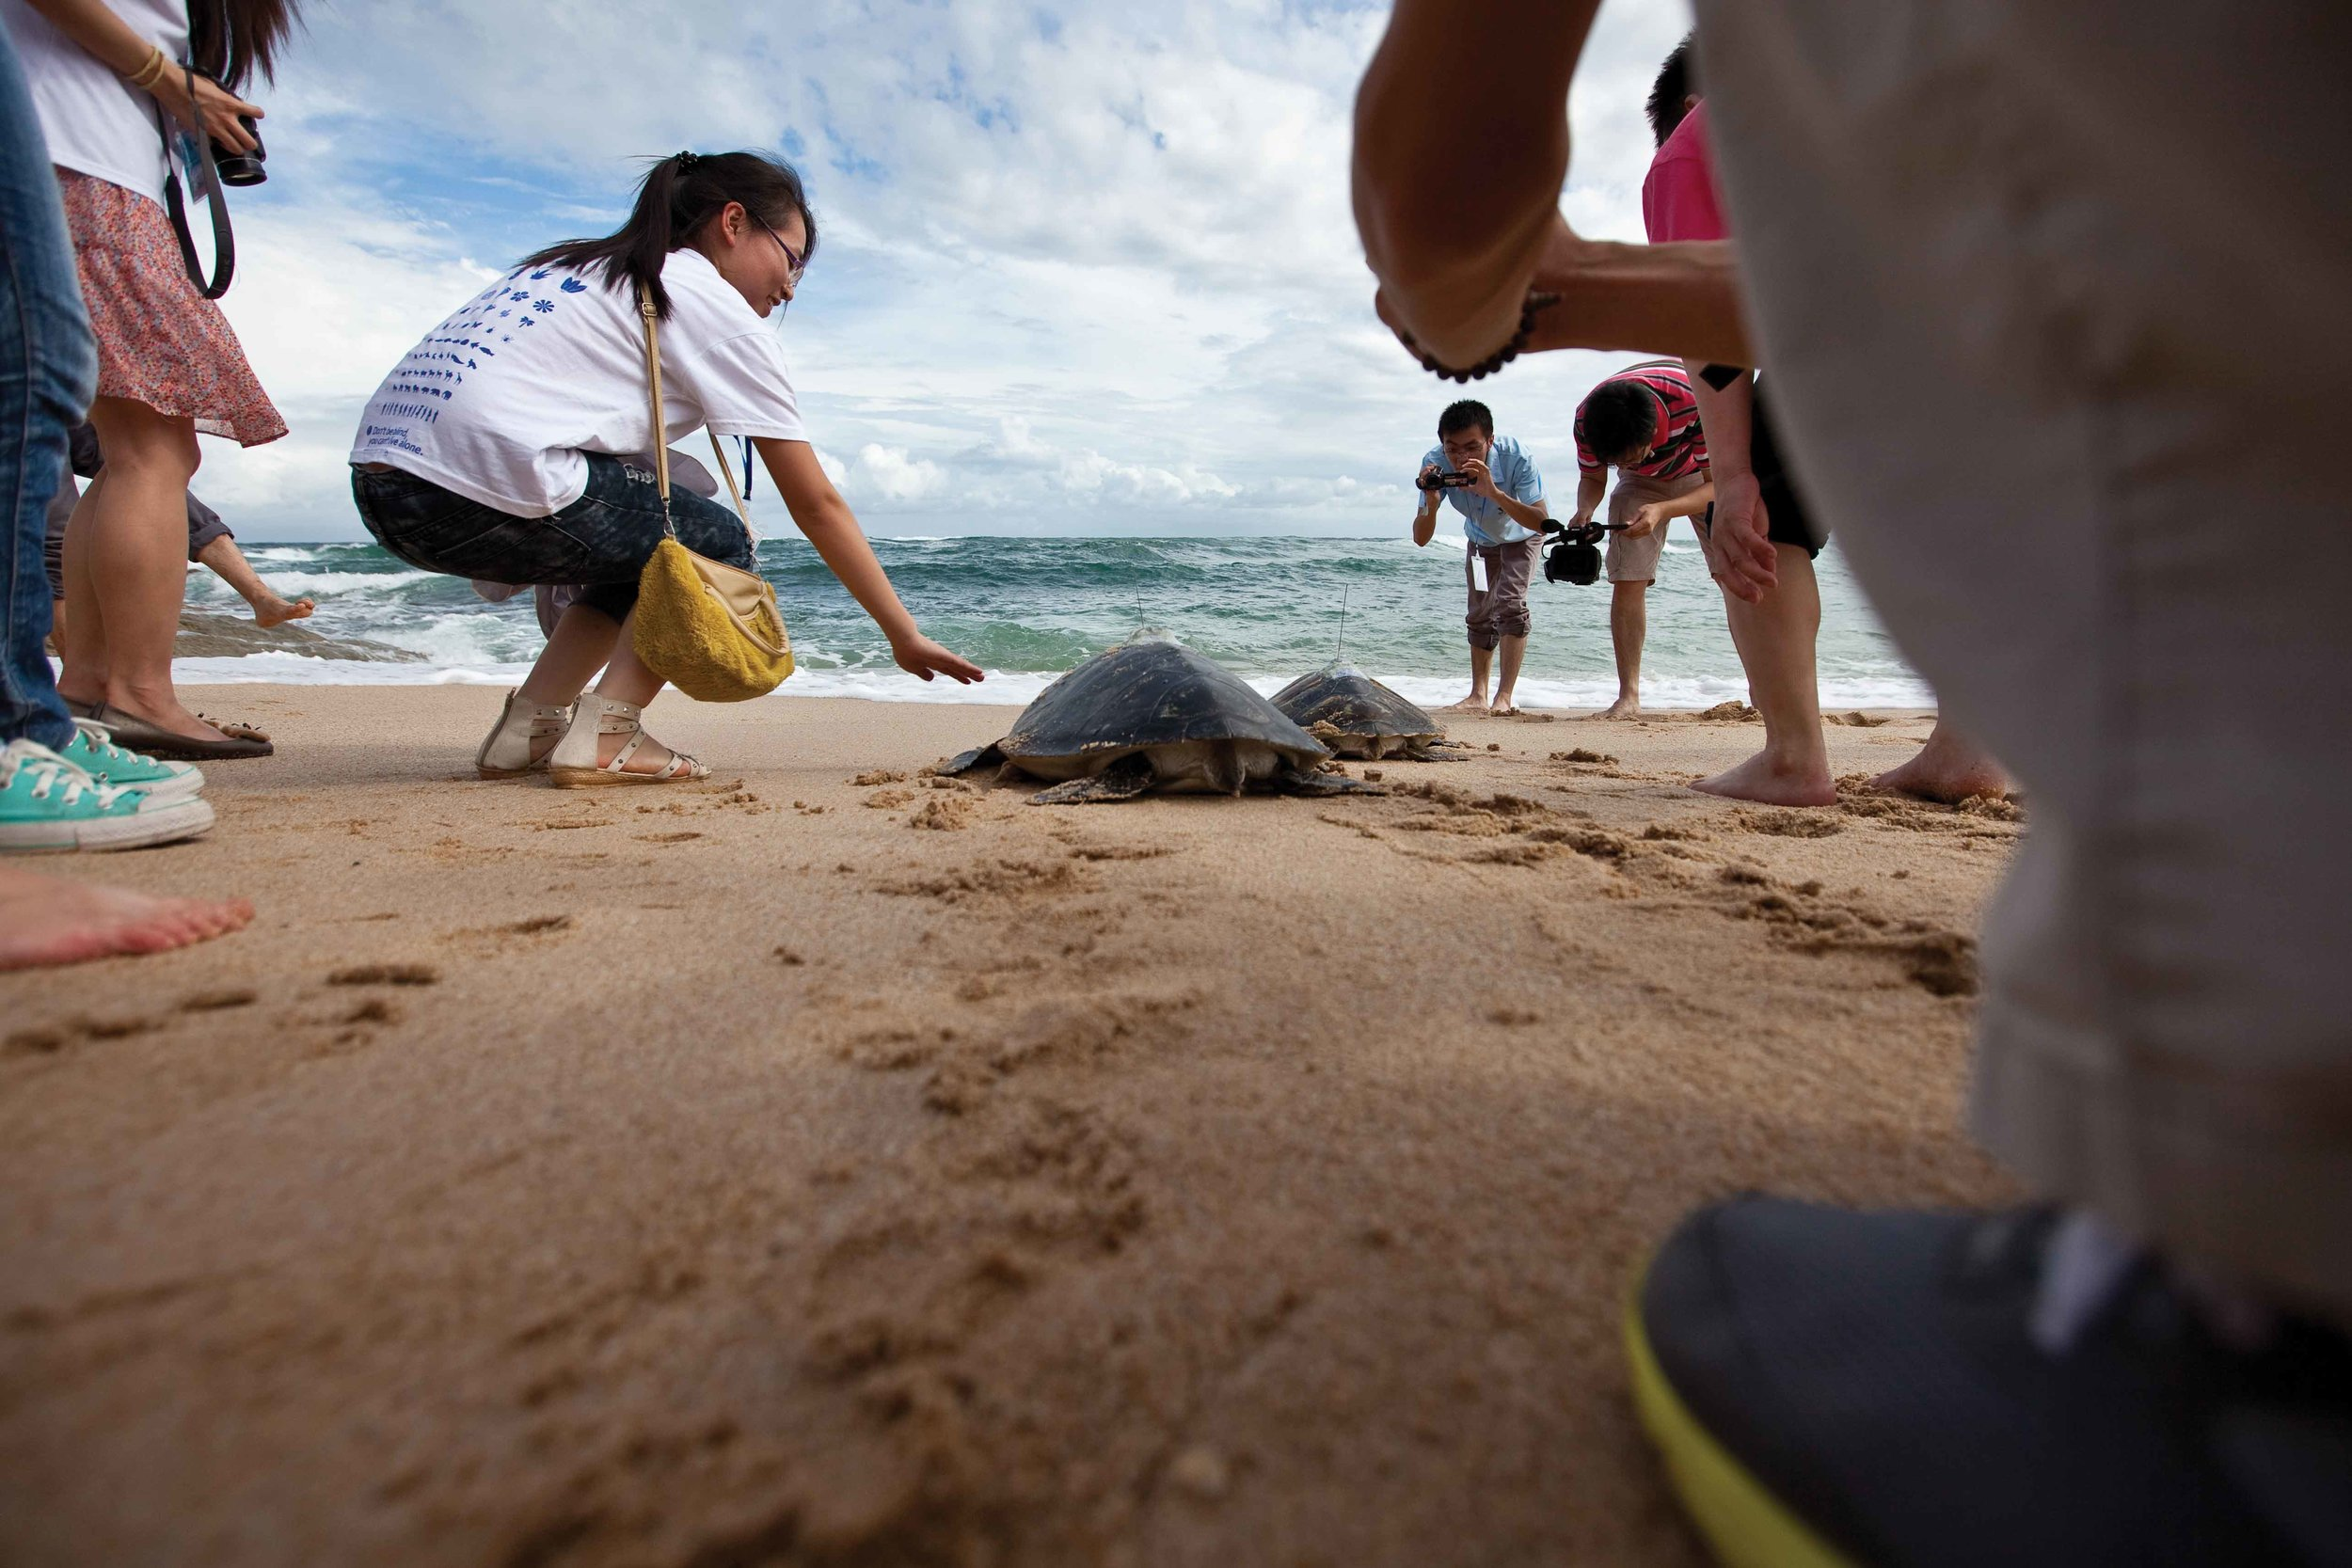 Green turtles fitted with satellite tracking devices are released from the Huidong National Gangkou Sea Turtle Reserve in China. © Brian J. Hutchinson